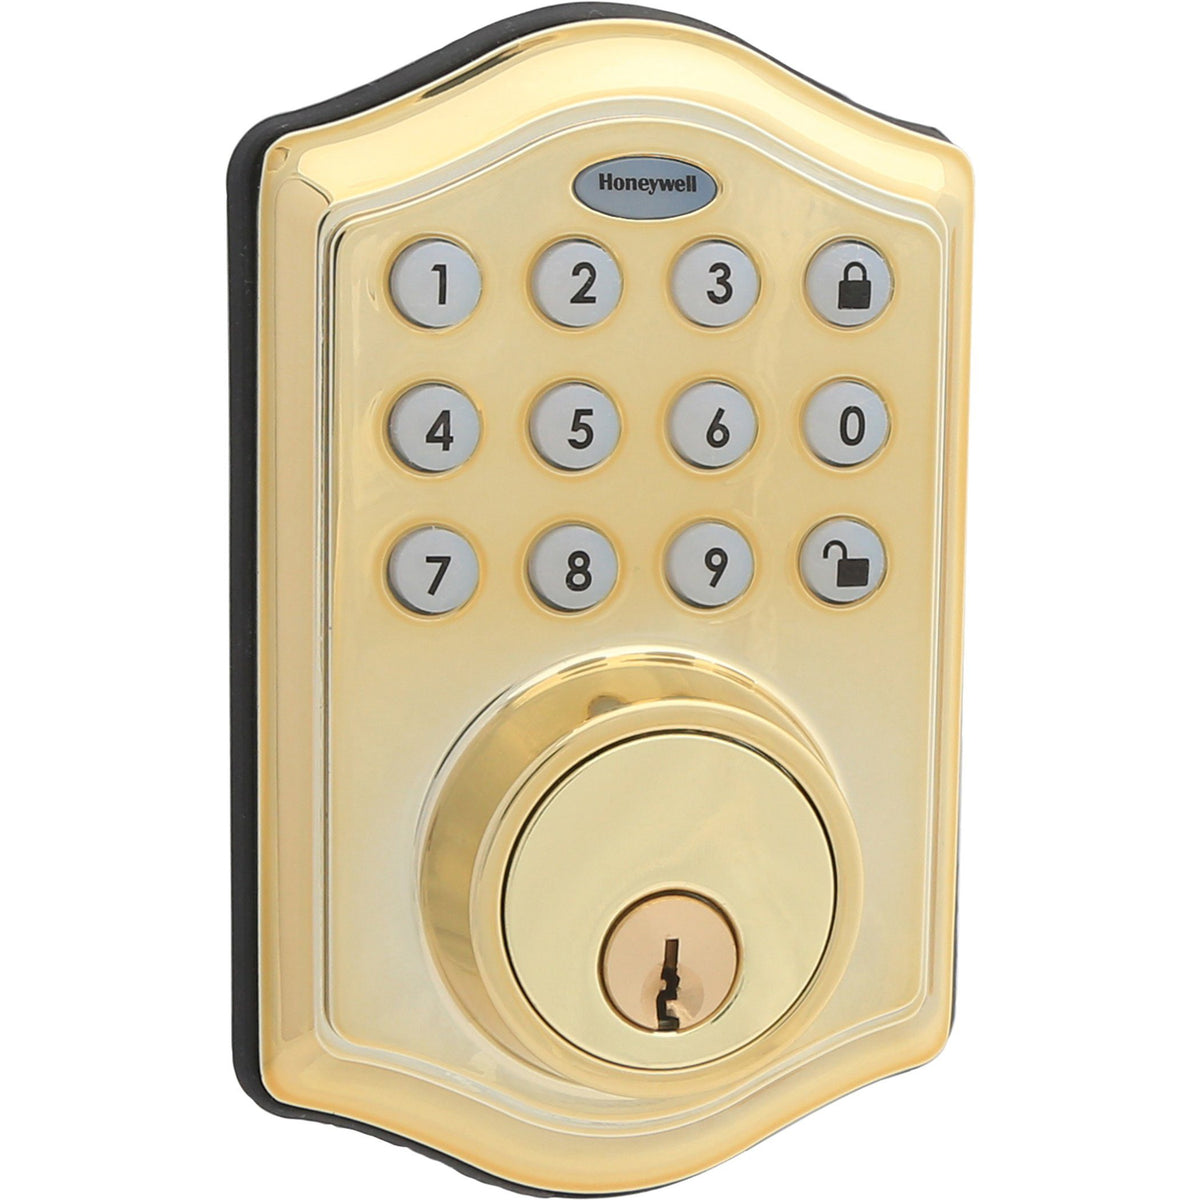 Honeywell 8712009 Electronic Deadbolt Door Lock with Keypad in Polished Brass